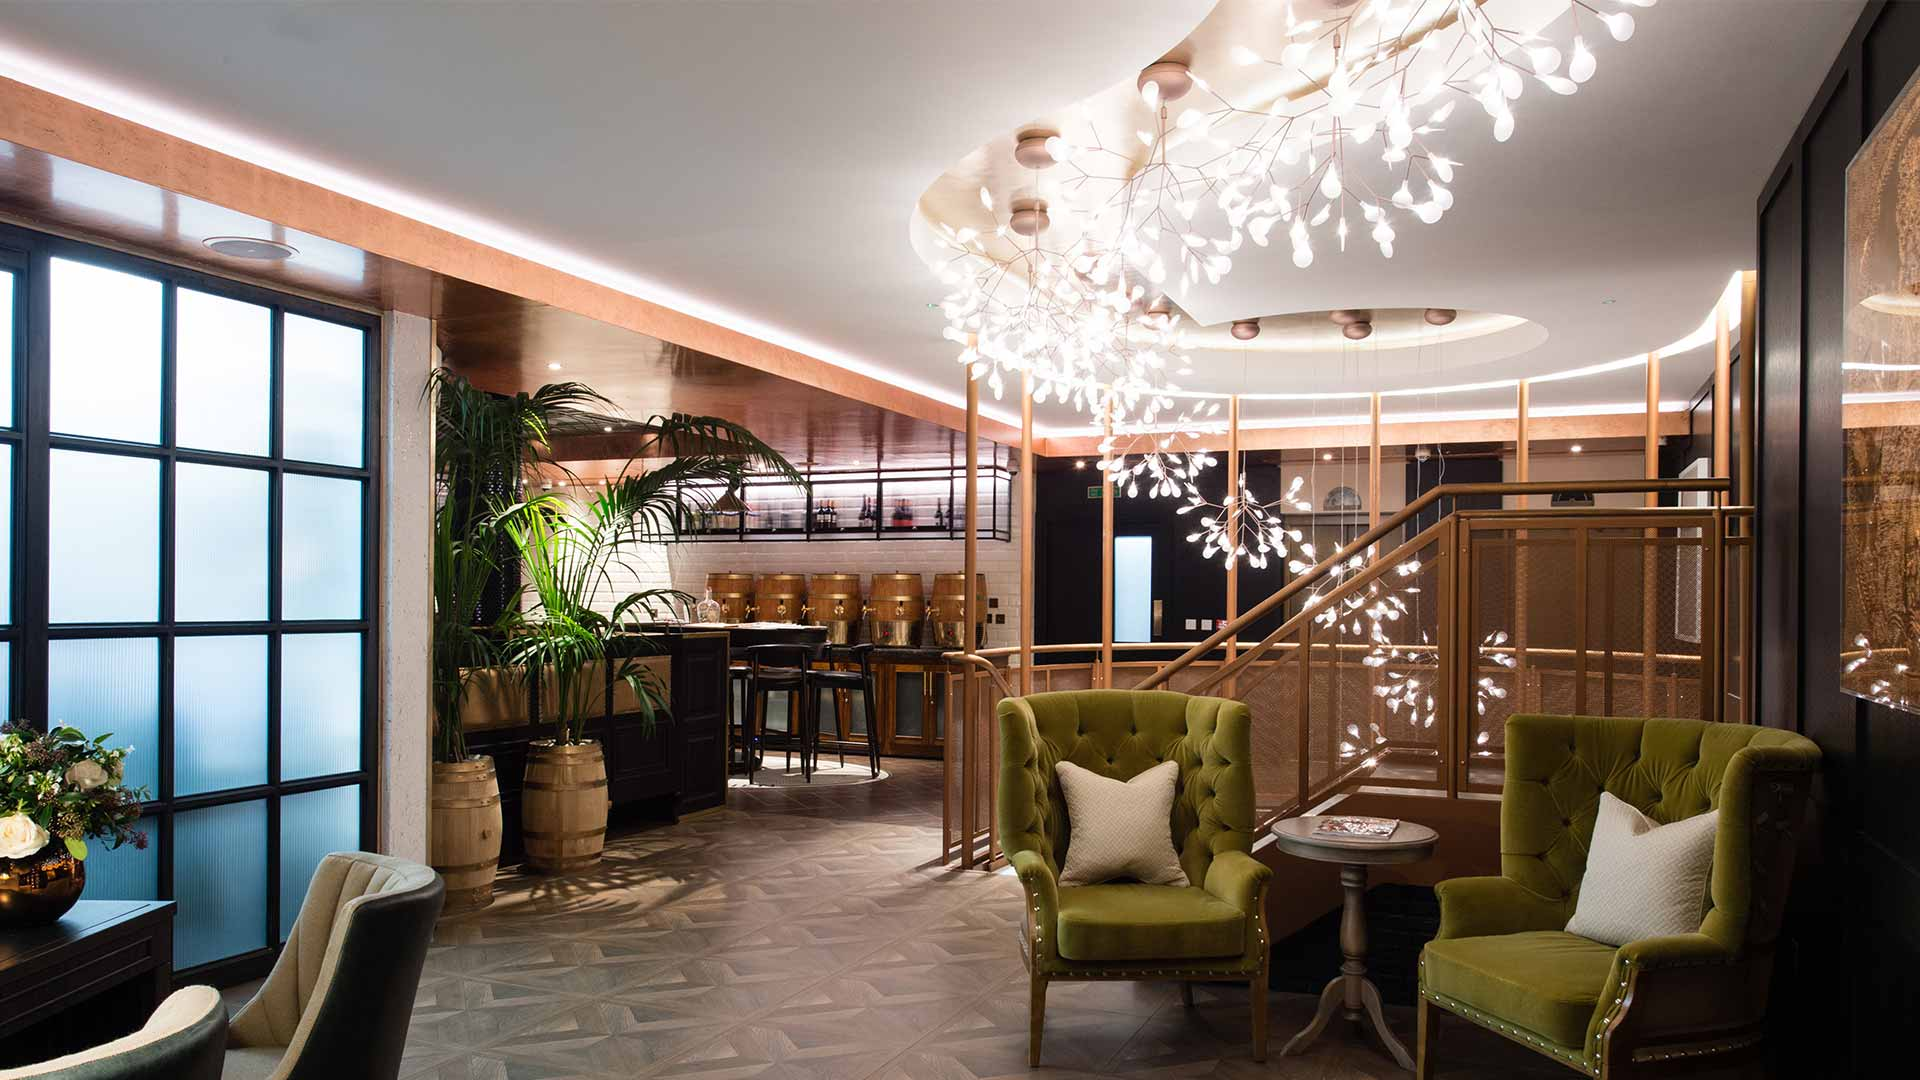 Vintry & Mercer Hotel Reception Lobby Botanical Inspired Light Installation Architectural Lighting Design Consultants Nulty